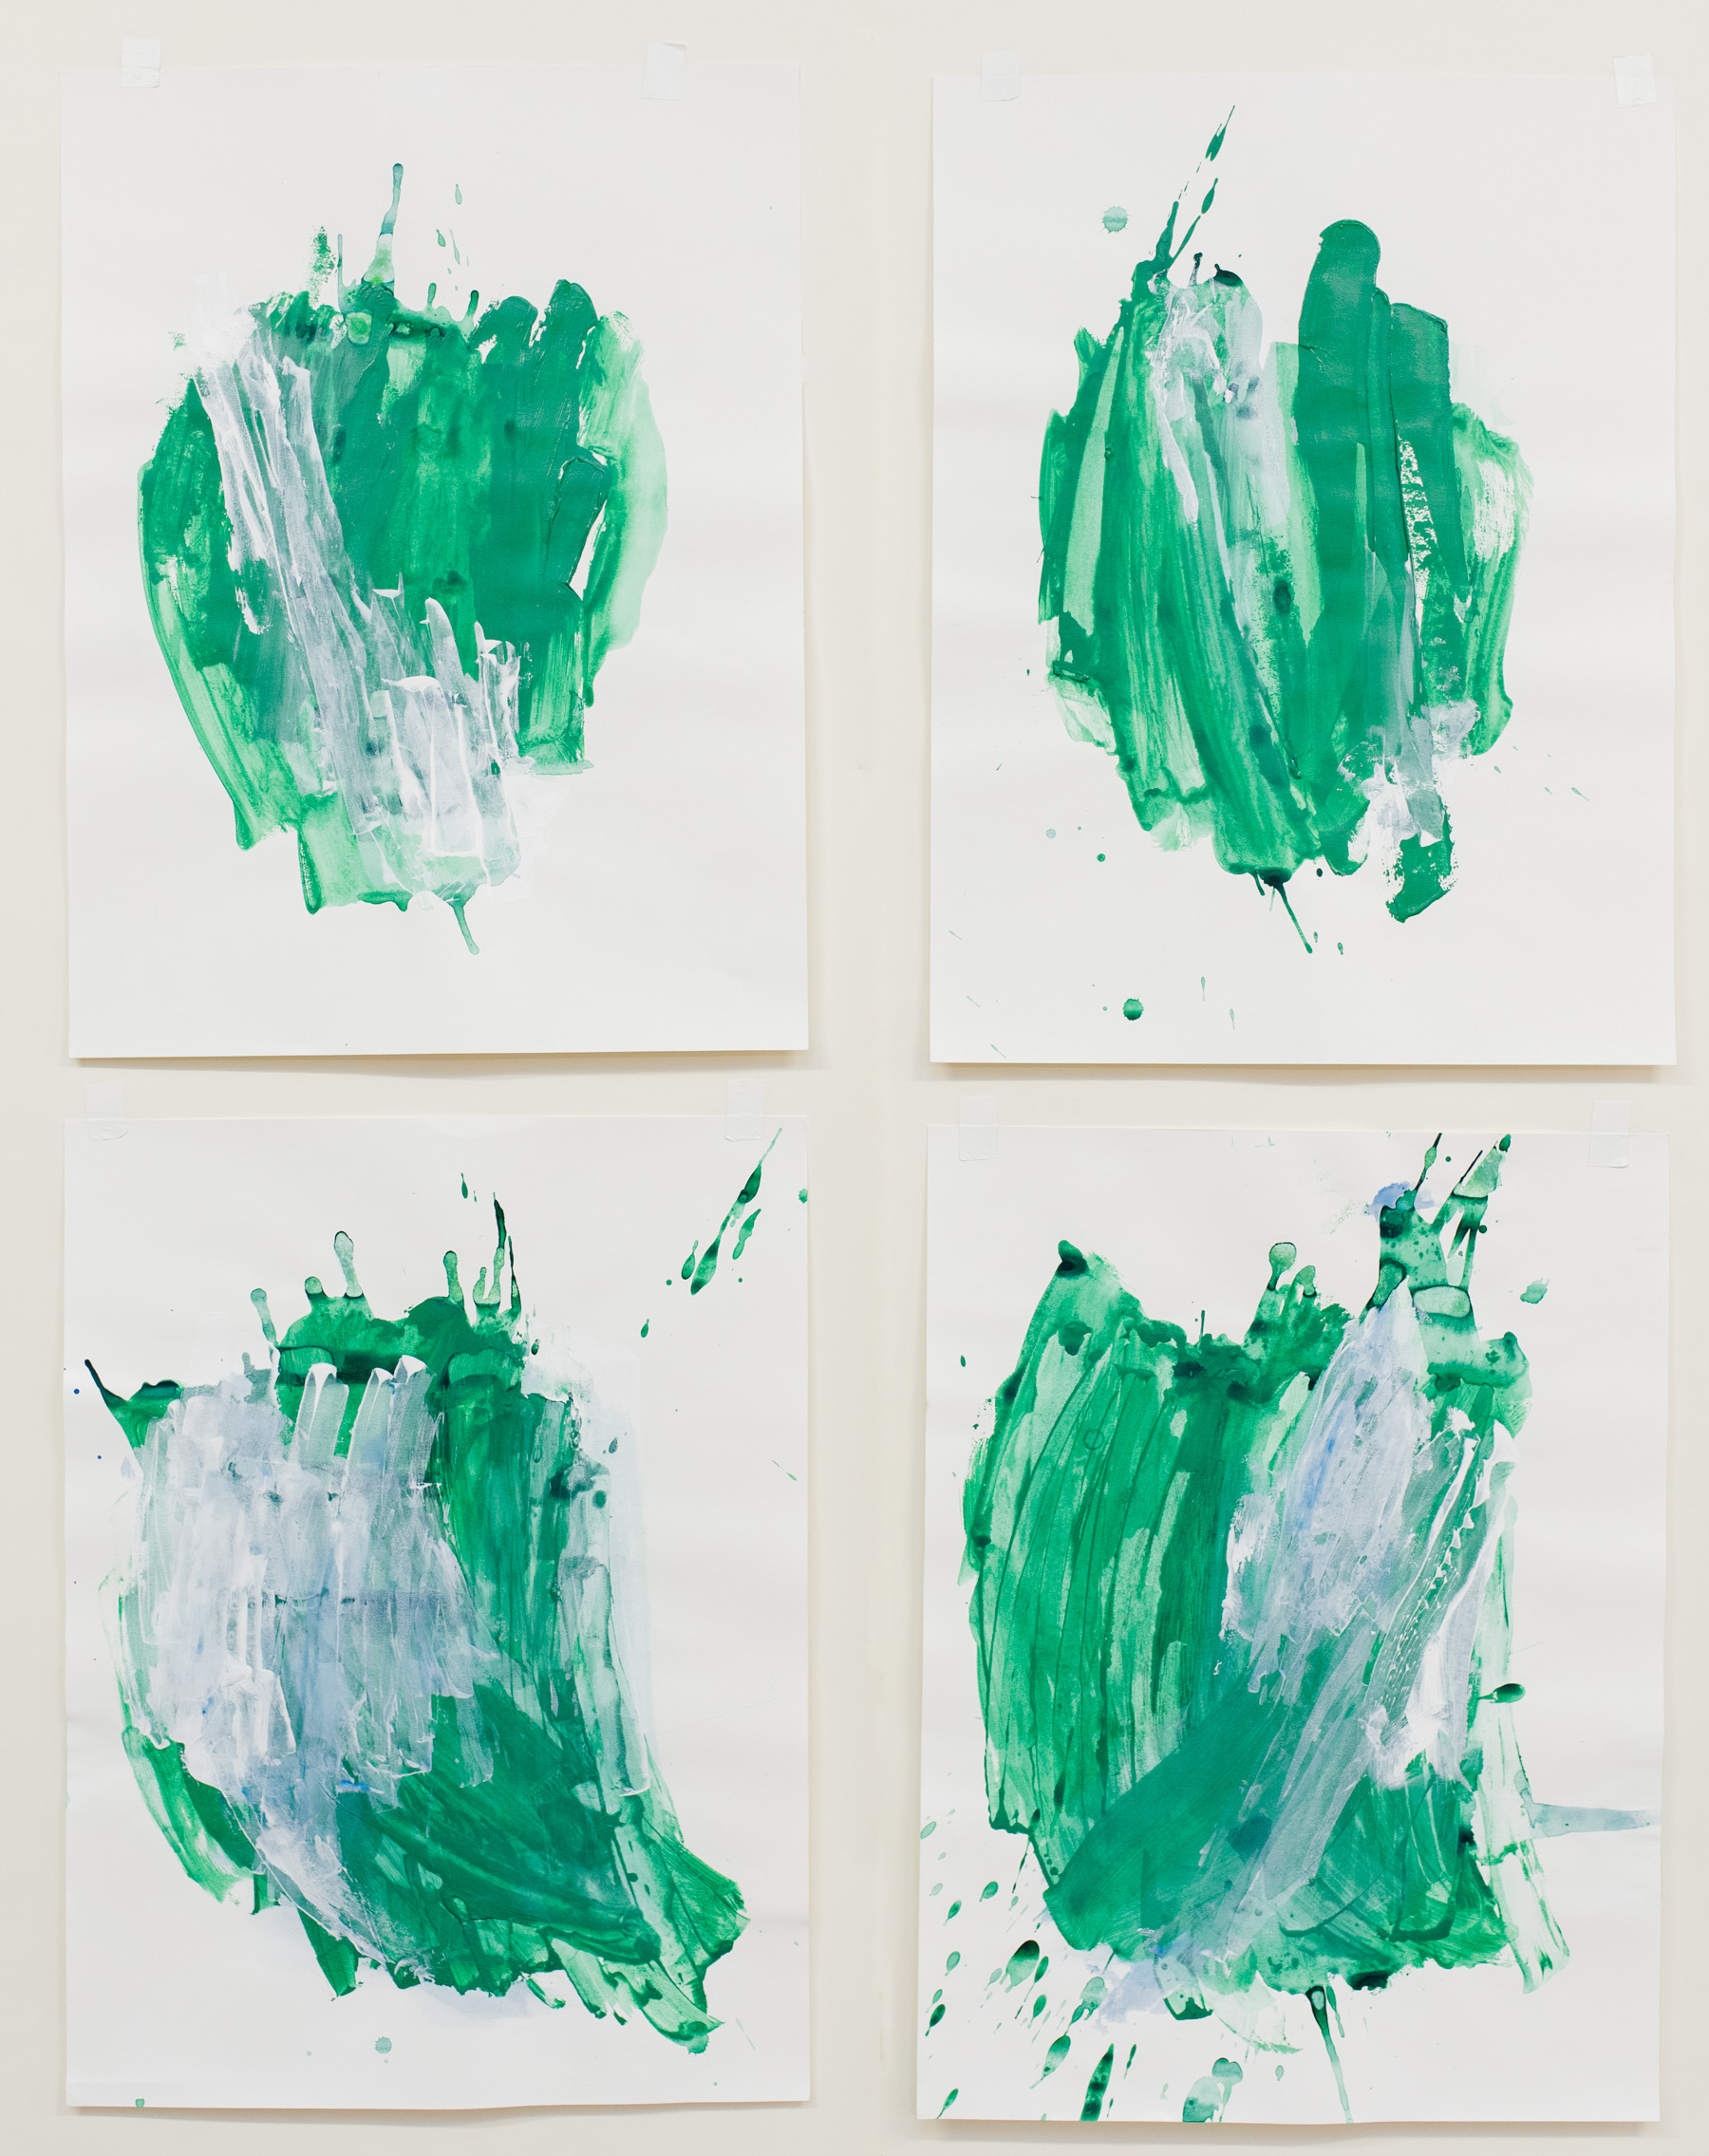 """Scatter #1-4 , 18""""x24"""" each, acrylic on paper, 2018, available"""